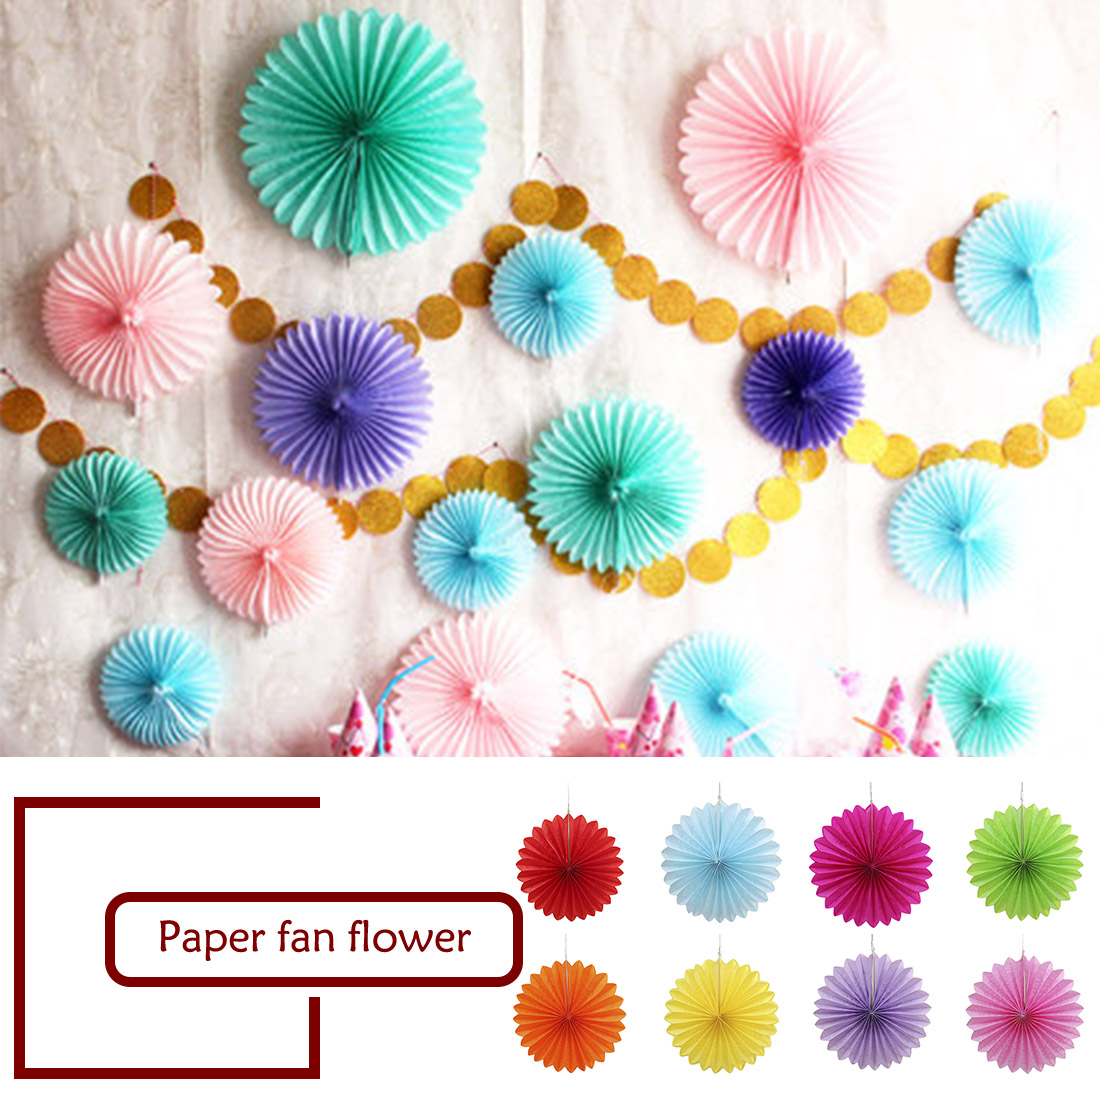 New 5pcs Tissue Paper Fan Diy Crafts Hanging Wedding: Hanging Tissue Paper Flower Decorative Wedding Party DIY